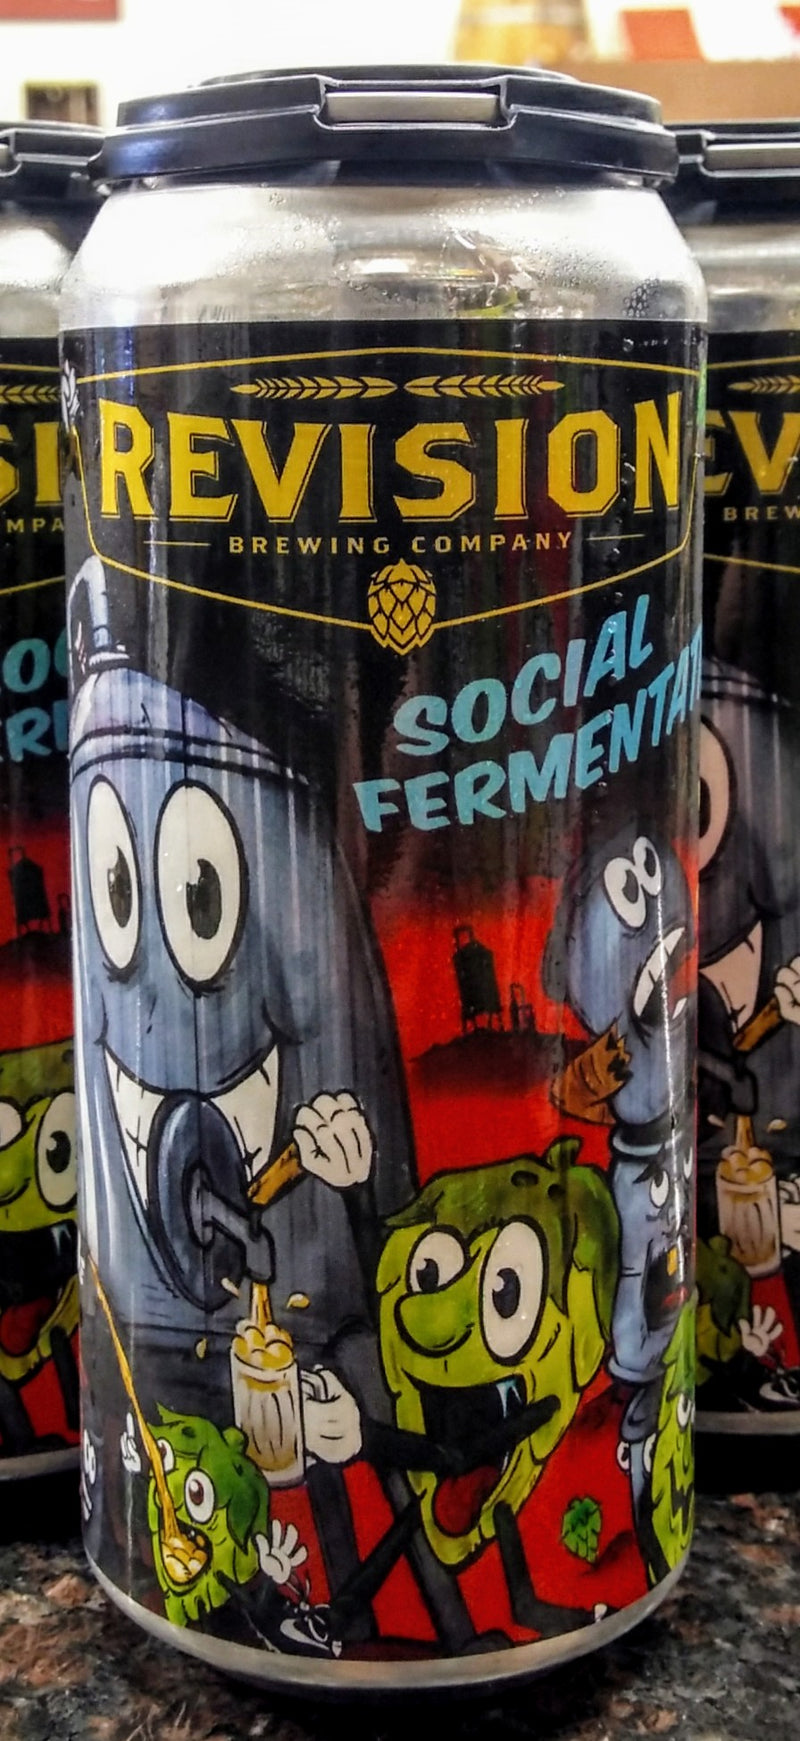 REVISION BREWING CO. SOCIAL FERMENTATION NE HAZY IPA 16oz can